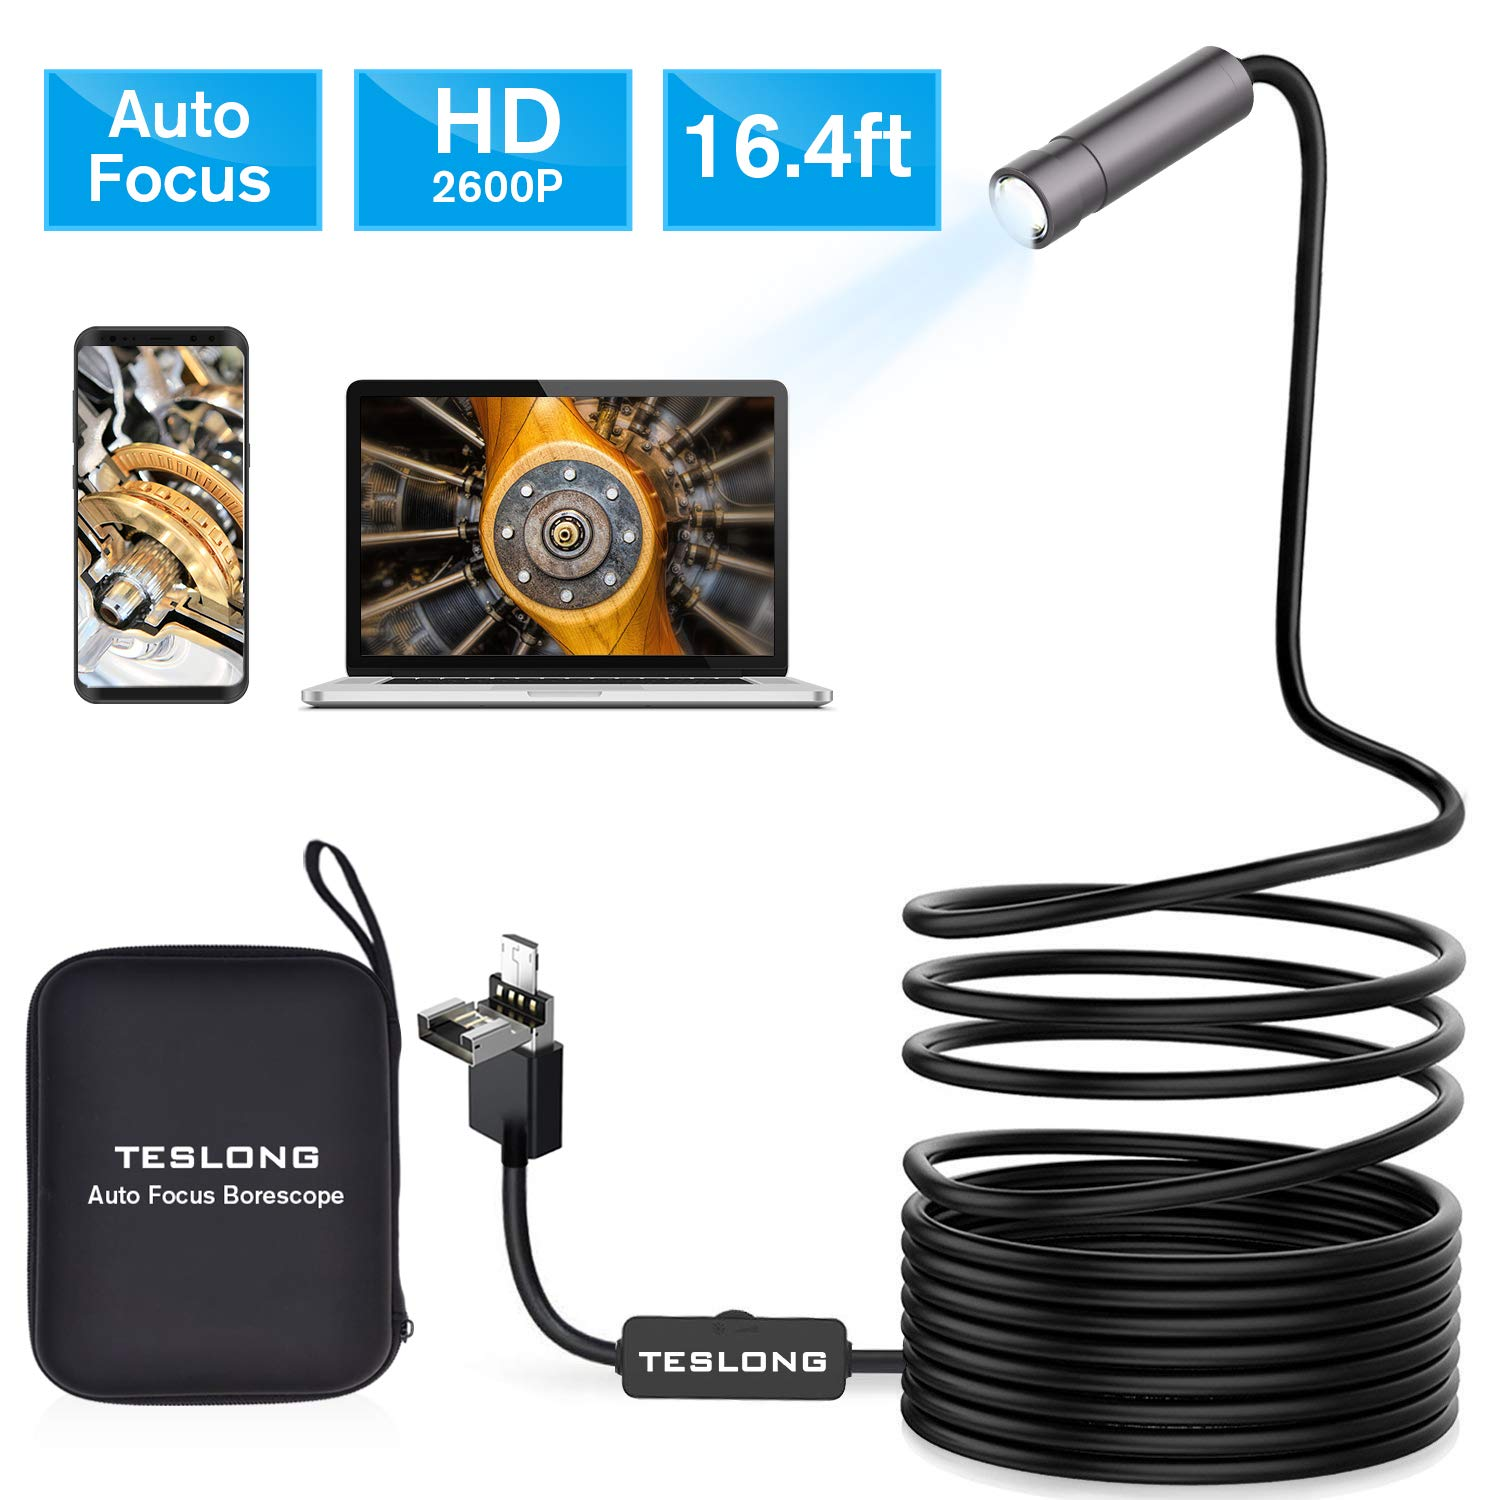 Auto Focus Inspection Camera, Teslong 5.0 Megapixels Semi-Rigid Borescope Endoscope Camera with Carrying Case for Android, Windows & MacBook Device (16.4ft/ 5m)